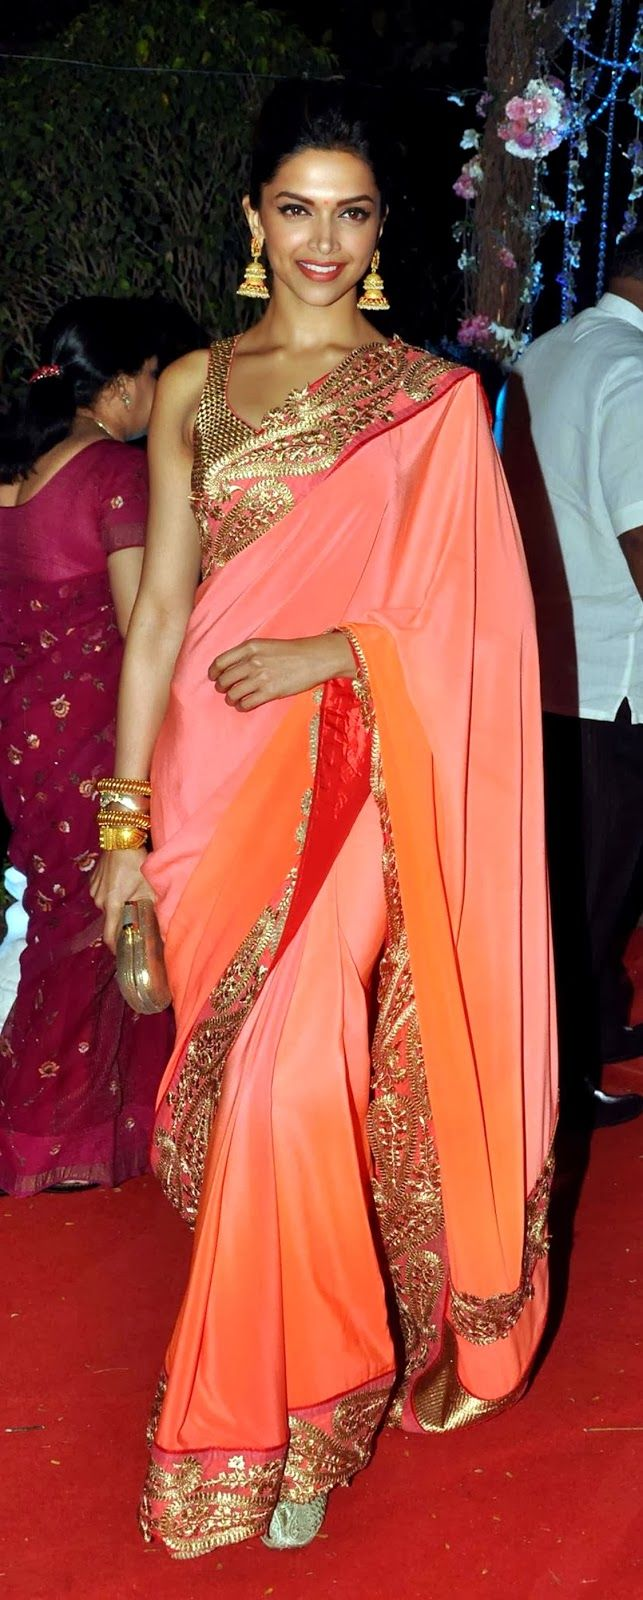 Deepika+Padukone+poses+as+she+attends+the+wedding+reception+of+actress+Ahana+Deol+and+husband+Vaibhav.jpg (643×1600)